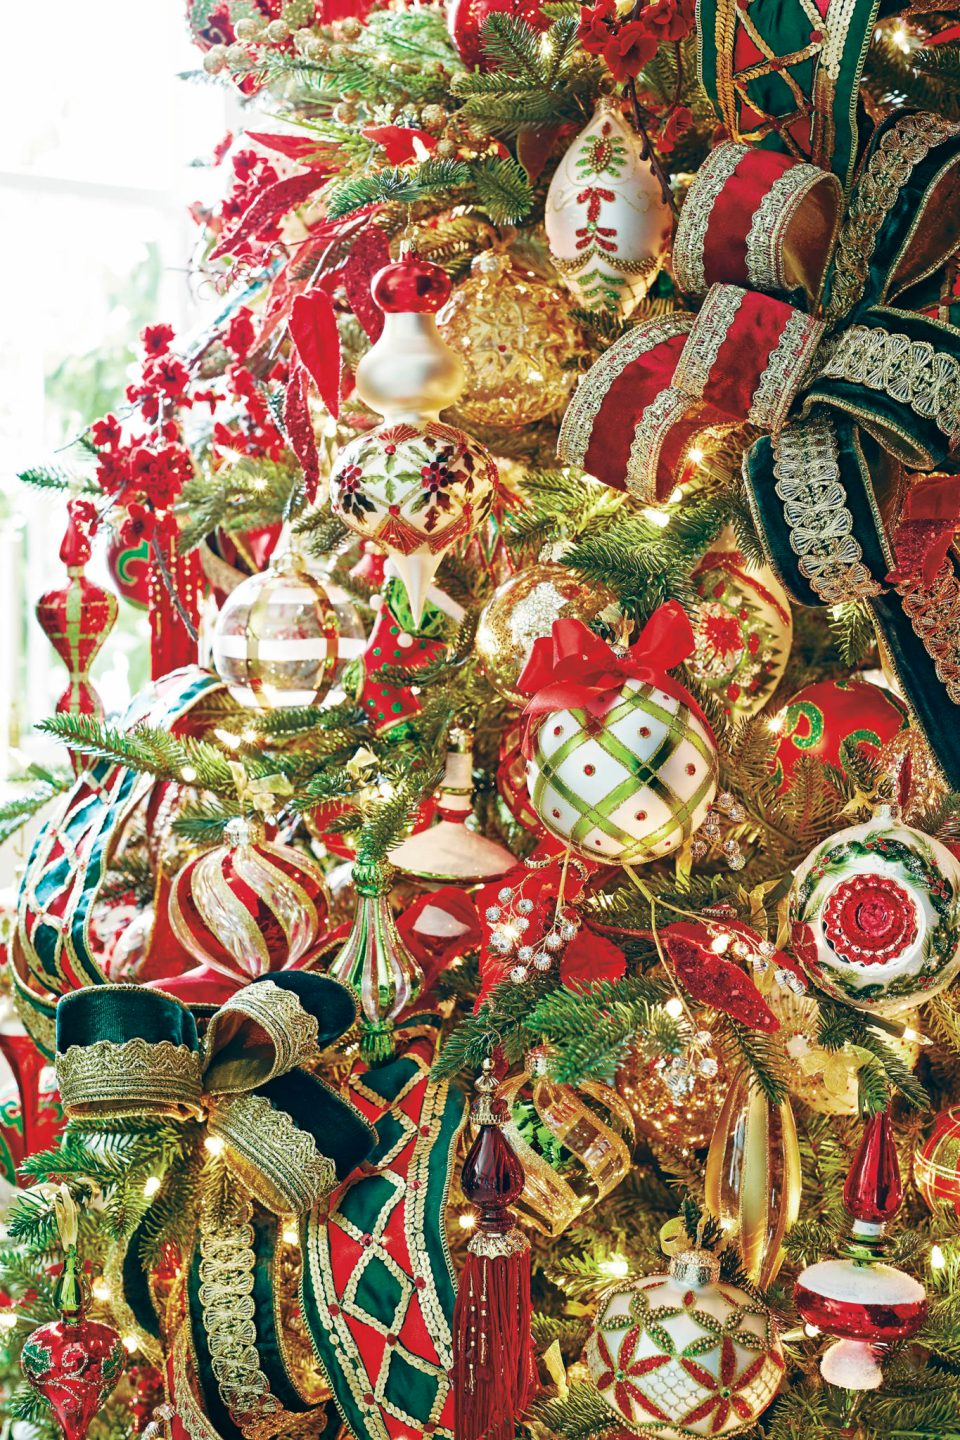 158719_005-960x1440 Holiday Ornaments We Love and How to Store Your Holiday Decor